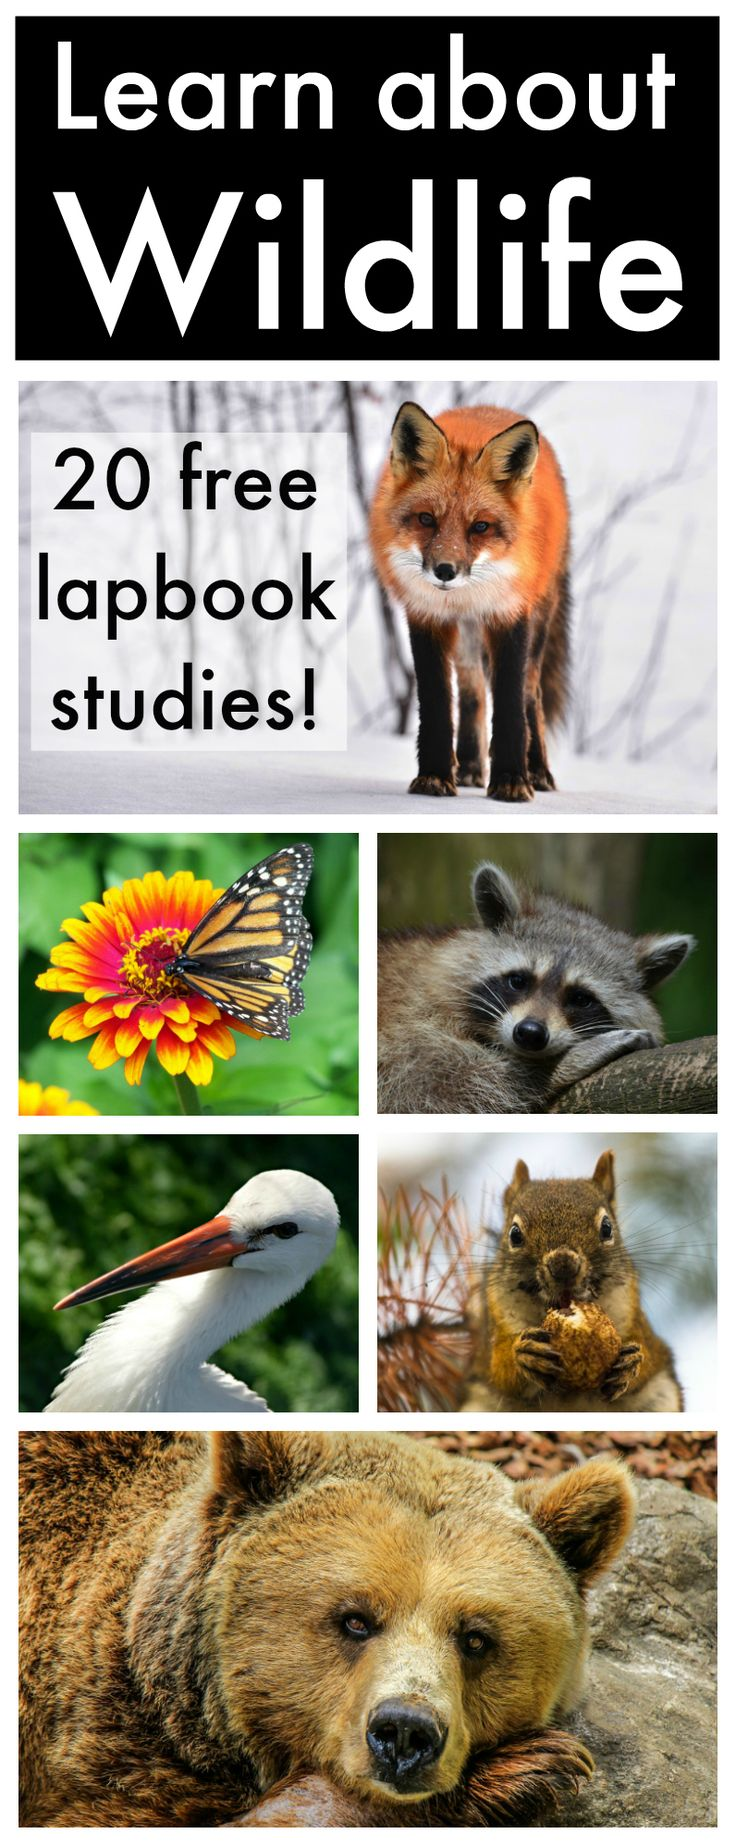 Learn about wildlife with these 20 free lapbook studies! A great break from your regular science curriculum.